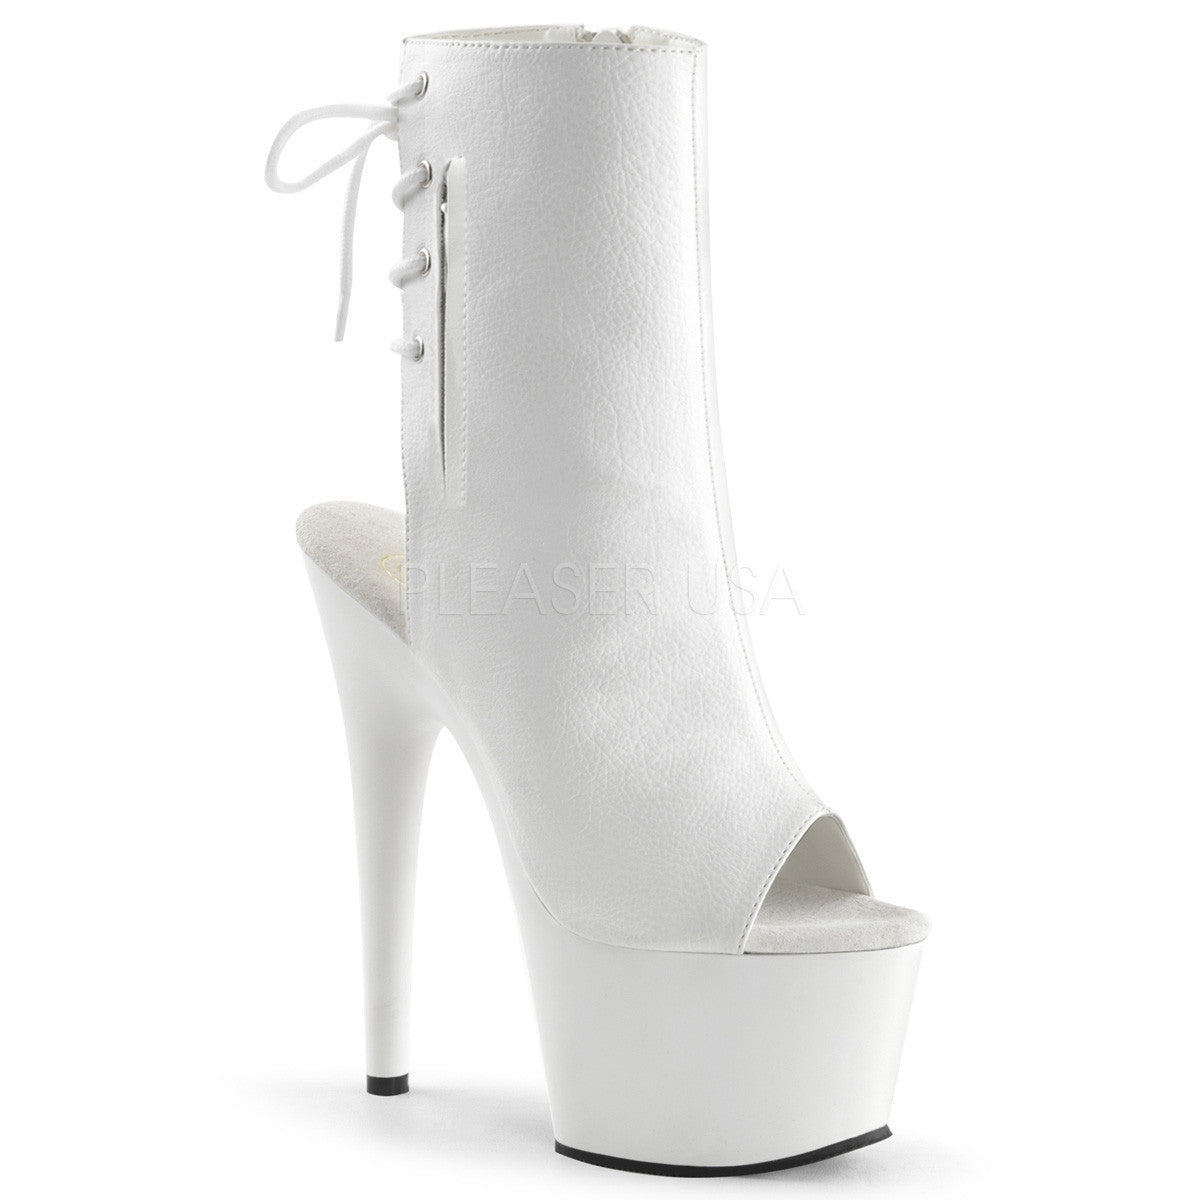 "7"" Open Toe Boots White - PlaythingsMiami"